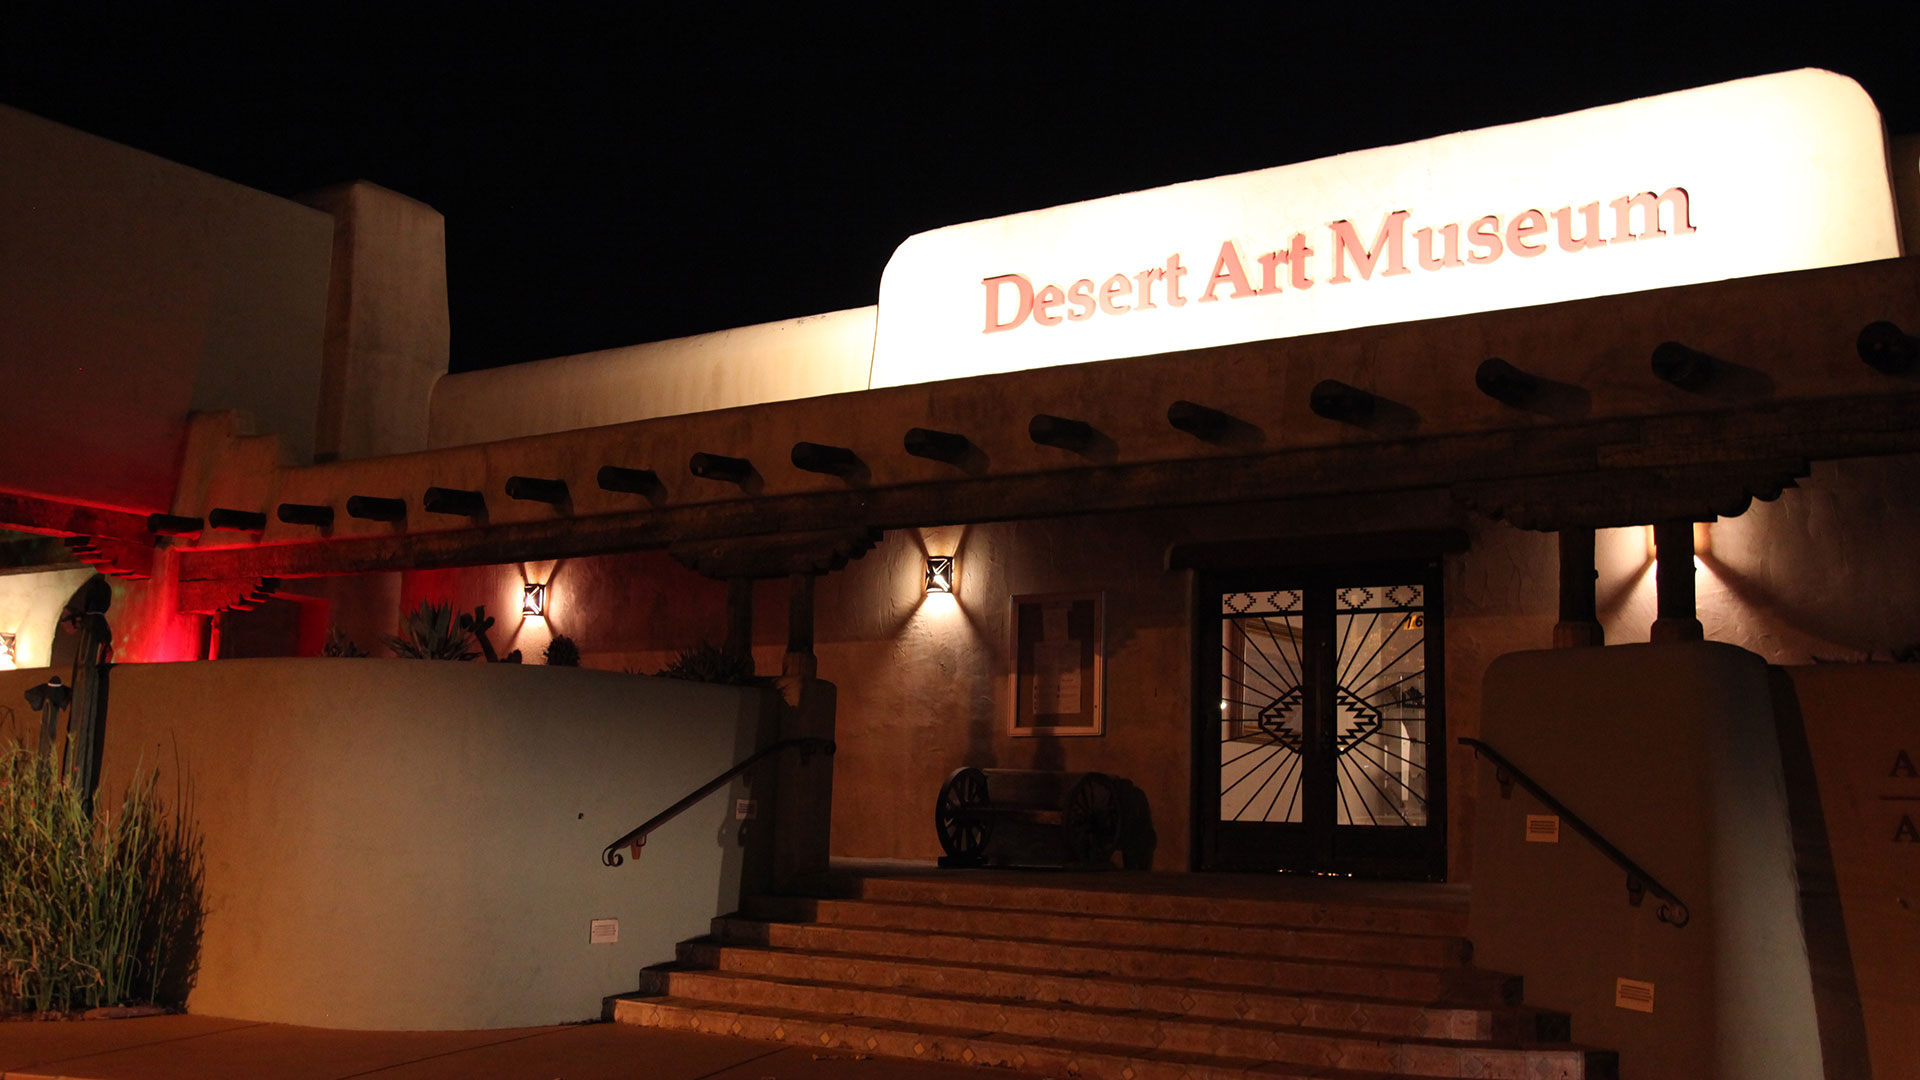 The Tucson Desert Art Museum opened in 2013 and is located on the city's east side.